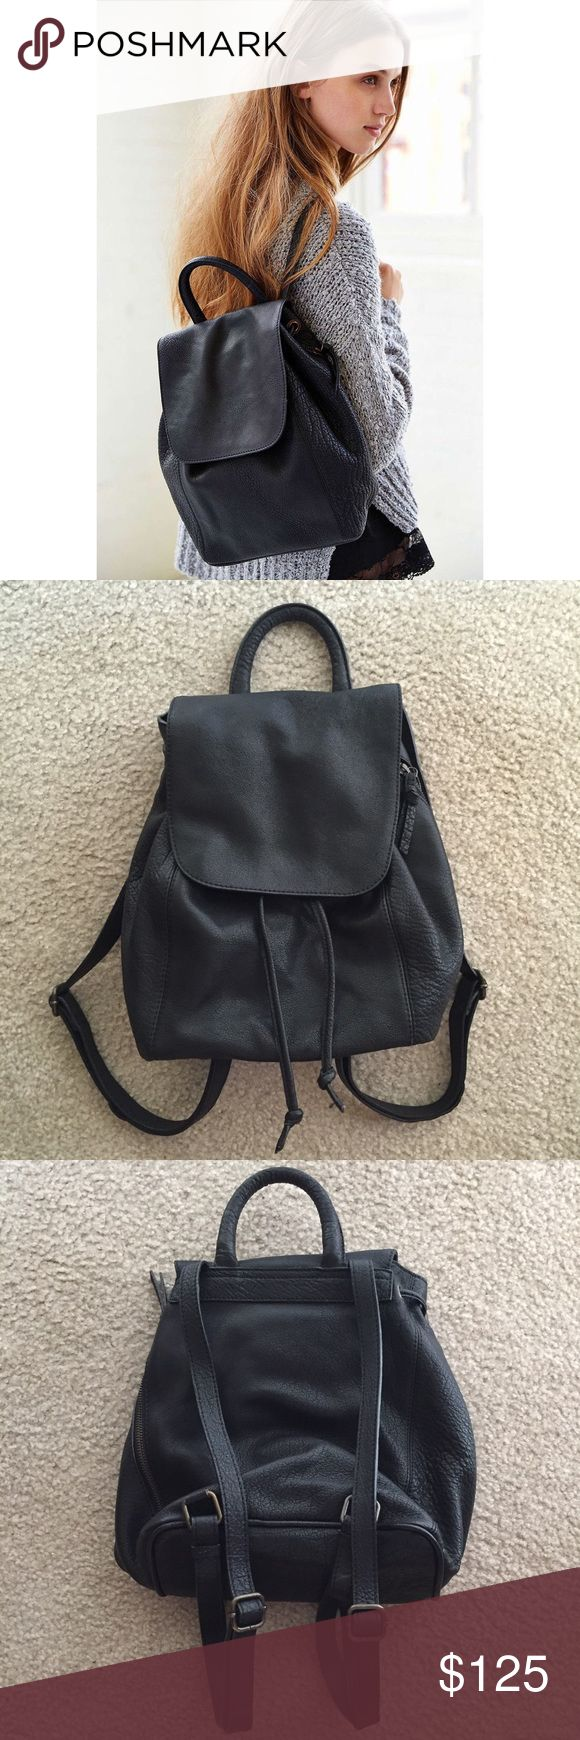 """Urban Outfitters Black leather backpack NWOT Great condition Adjustable straps Real leather which is thick and sturdy Very roomy and trendy 13"""" x 9.2"""" Fits iPad 2/3/4/MacBook perfectly Brand is silence + noise from Urban outfitters Sold out everywhere  Price is firm No trade $100 plus shipping on Ⓜ️ and Vinted  Check out my closet! Brandy Melville John Galt Forever 21 American Eagle American Apparel Urban Outfitters Charlotte Russe Hollister Aeropostale Minkpink Nasty Gal Topshop Free people…"""